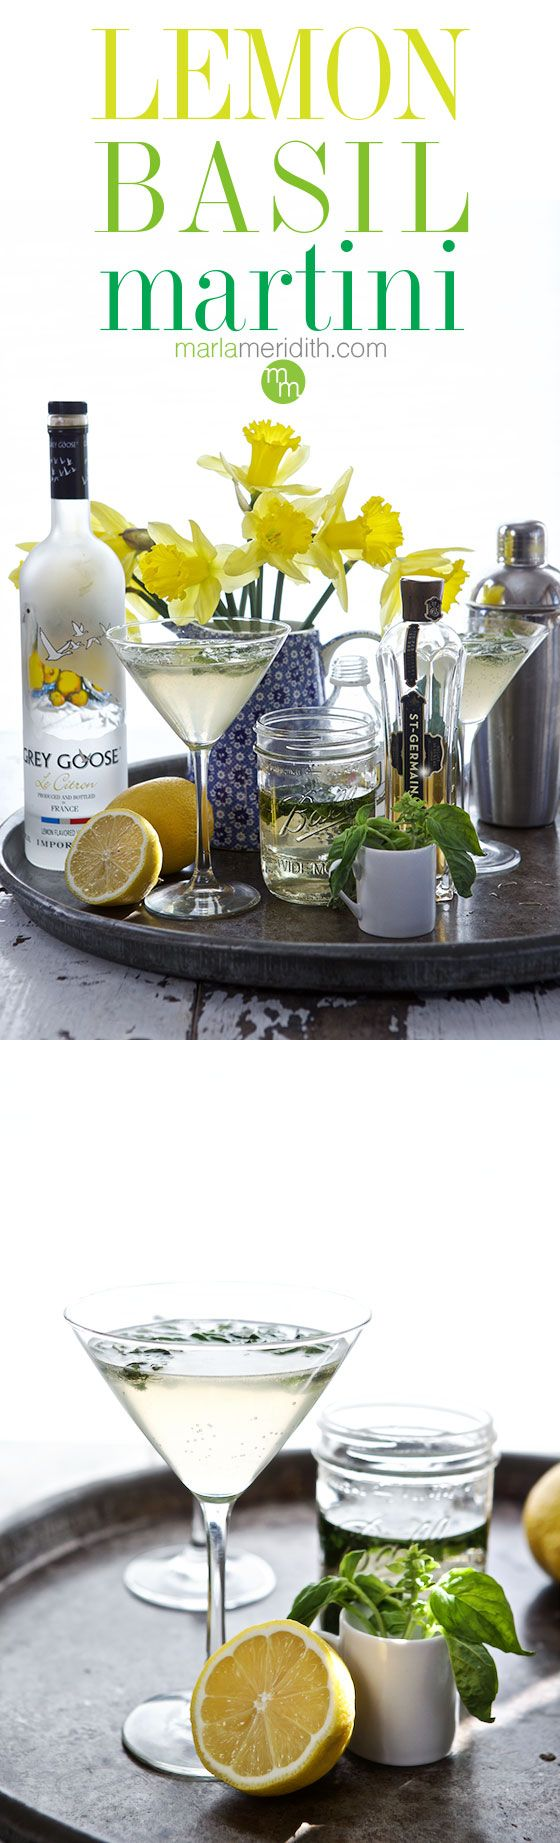 Lemon Basil Martini | A beautiful & refreshing #cocktail | MarlaMeridith.com ( @marlameridith )